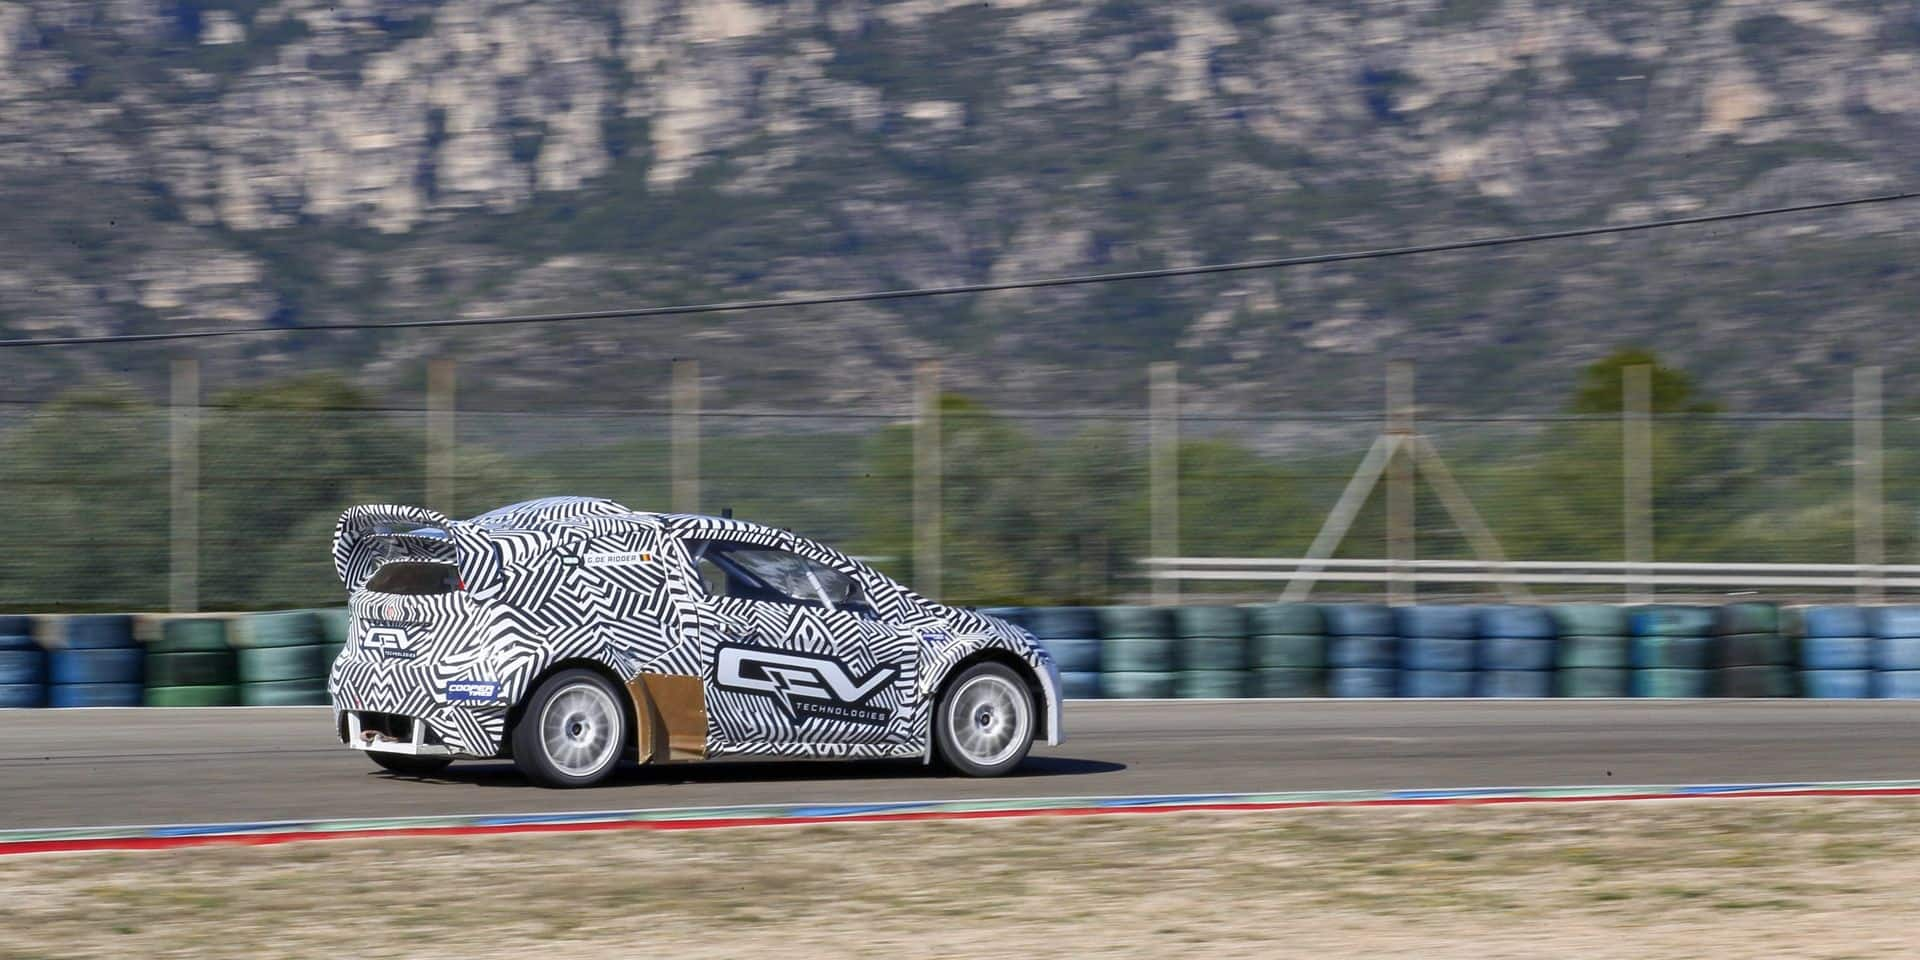 Guillaume De Ridder s'engage en rallycross électrique (RX2e) avec le team Olsbergs